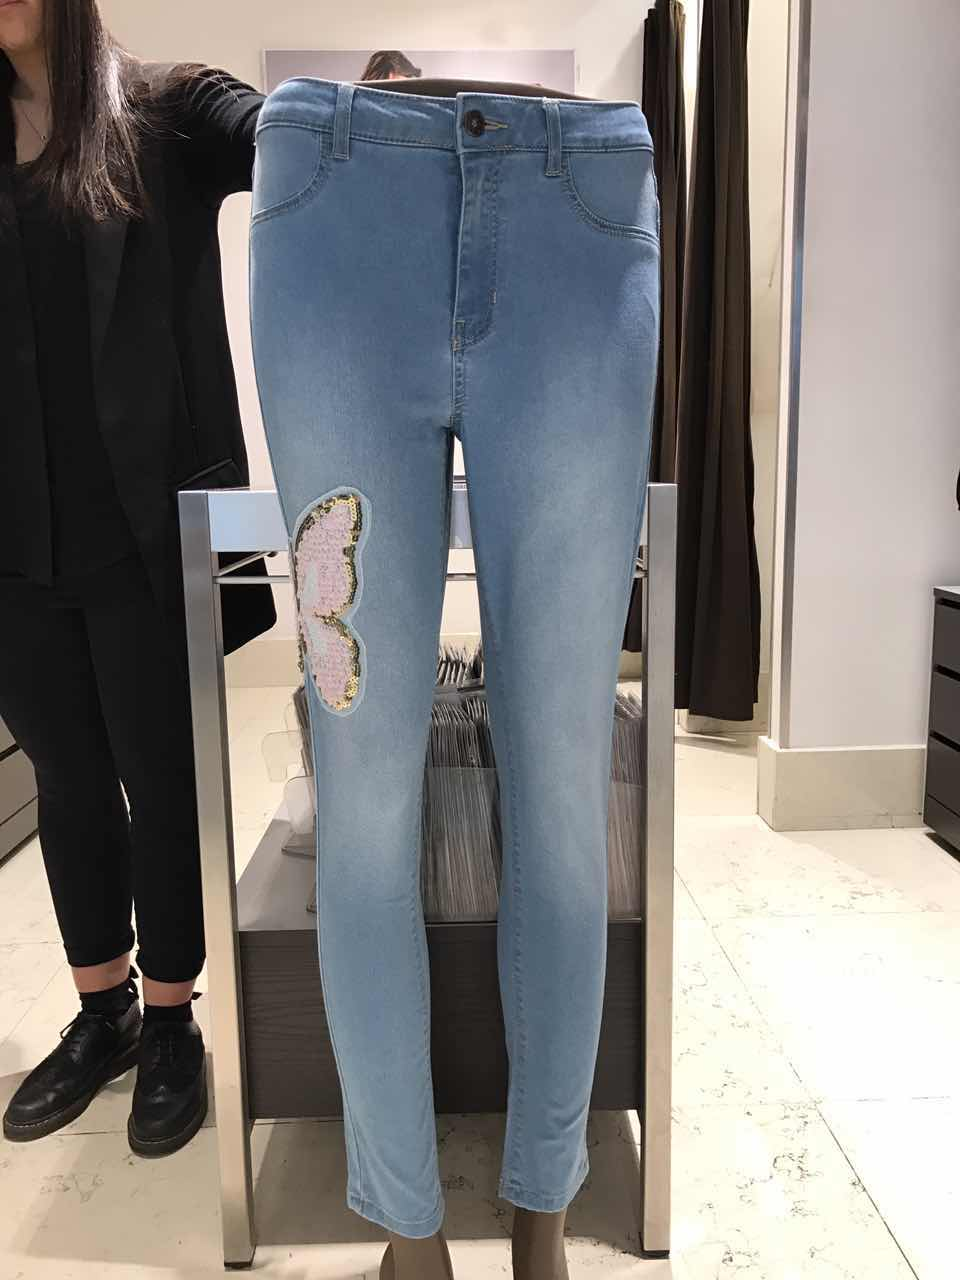 431a69519cbd8 Calzedonia summer powder white beads butterfly Fly fly skinny jeans leggings  body pants